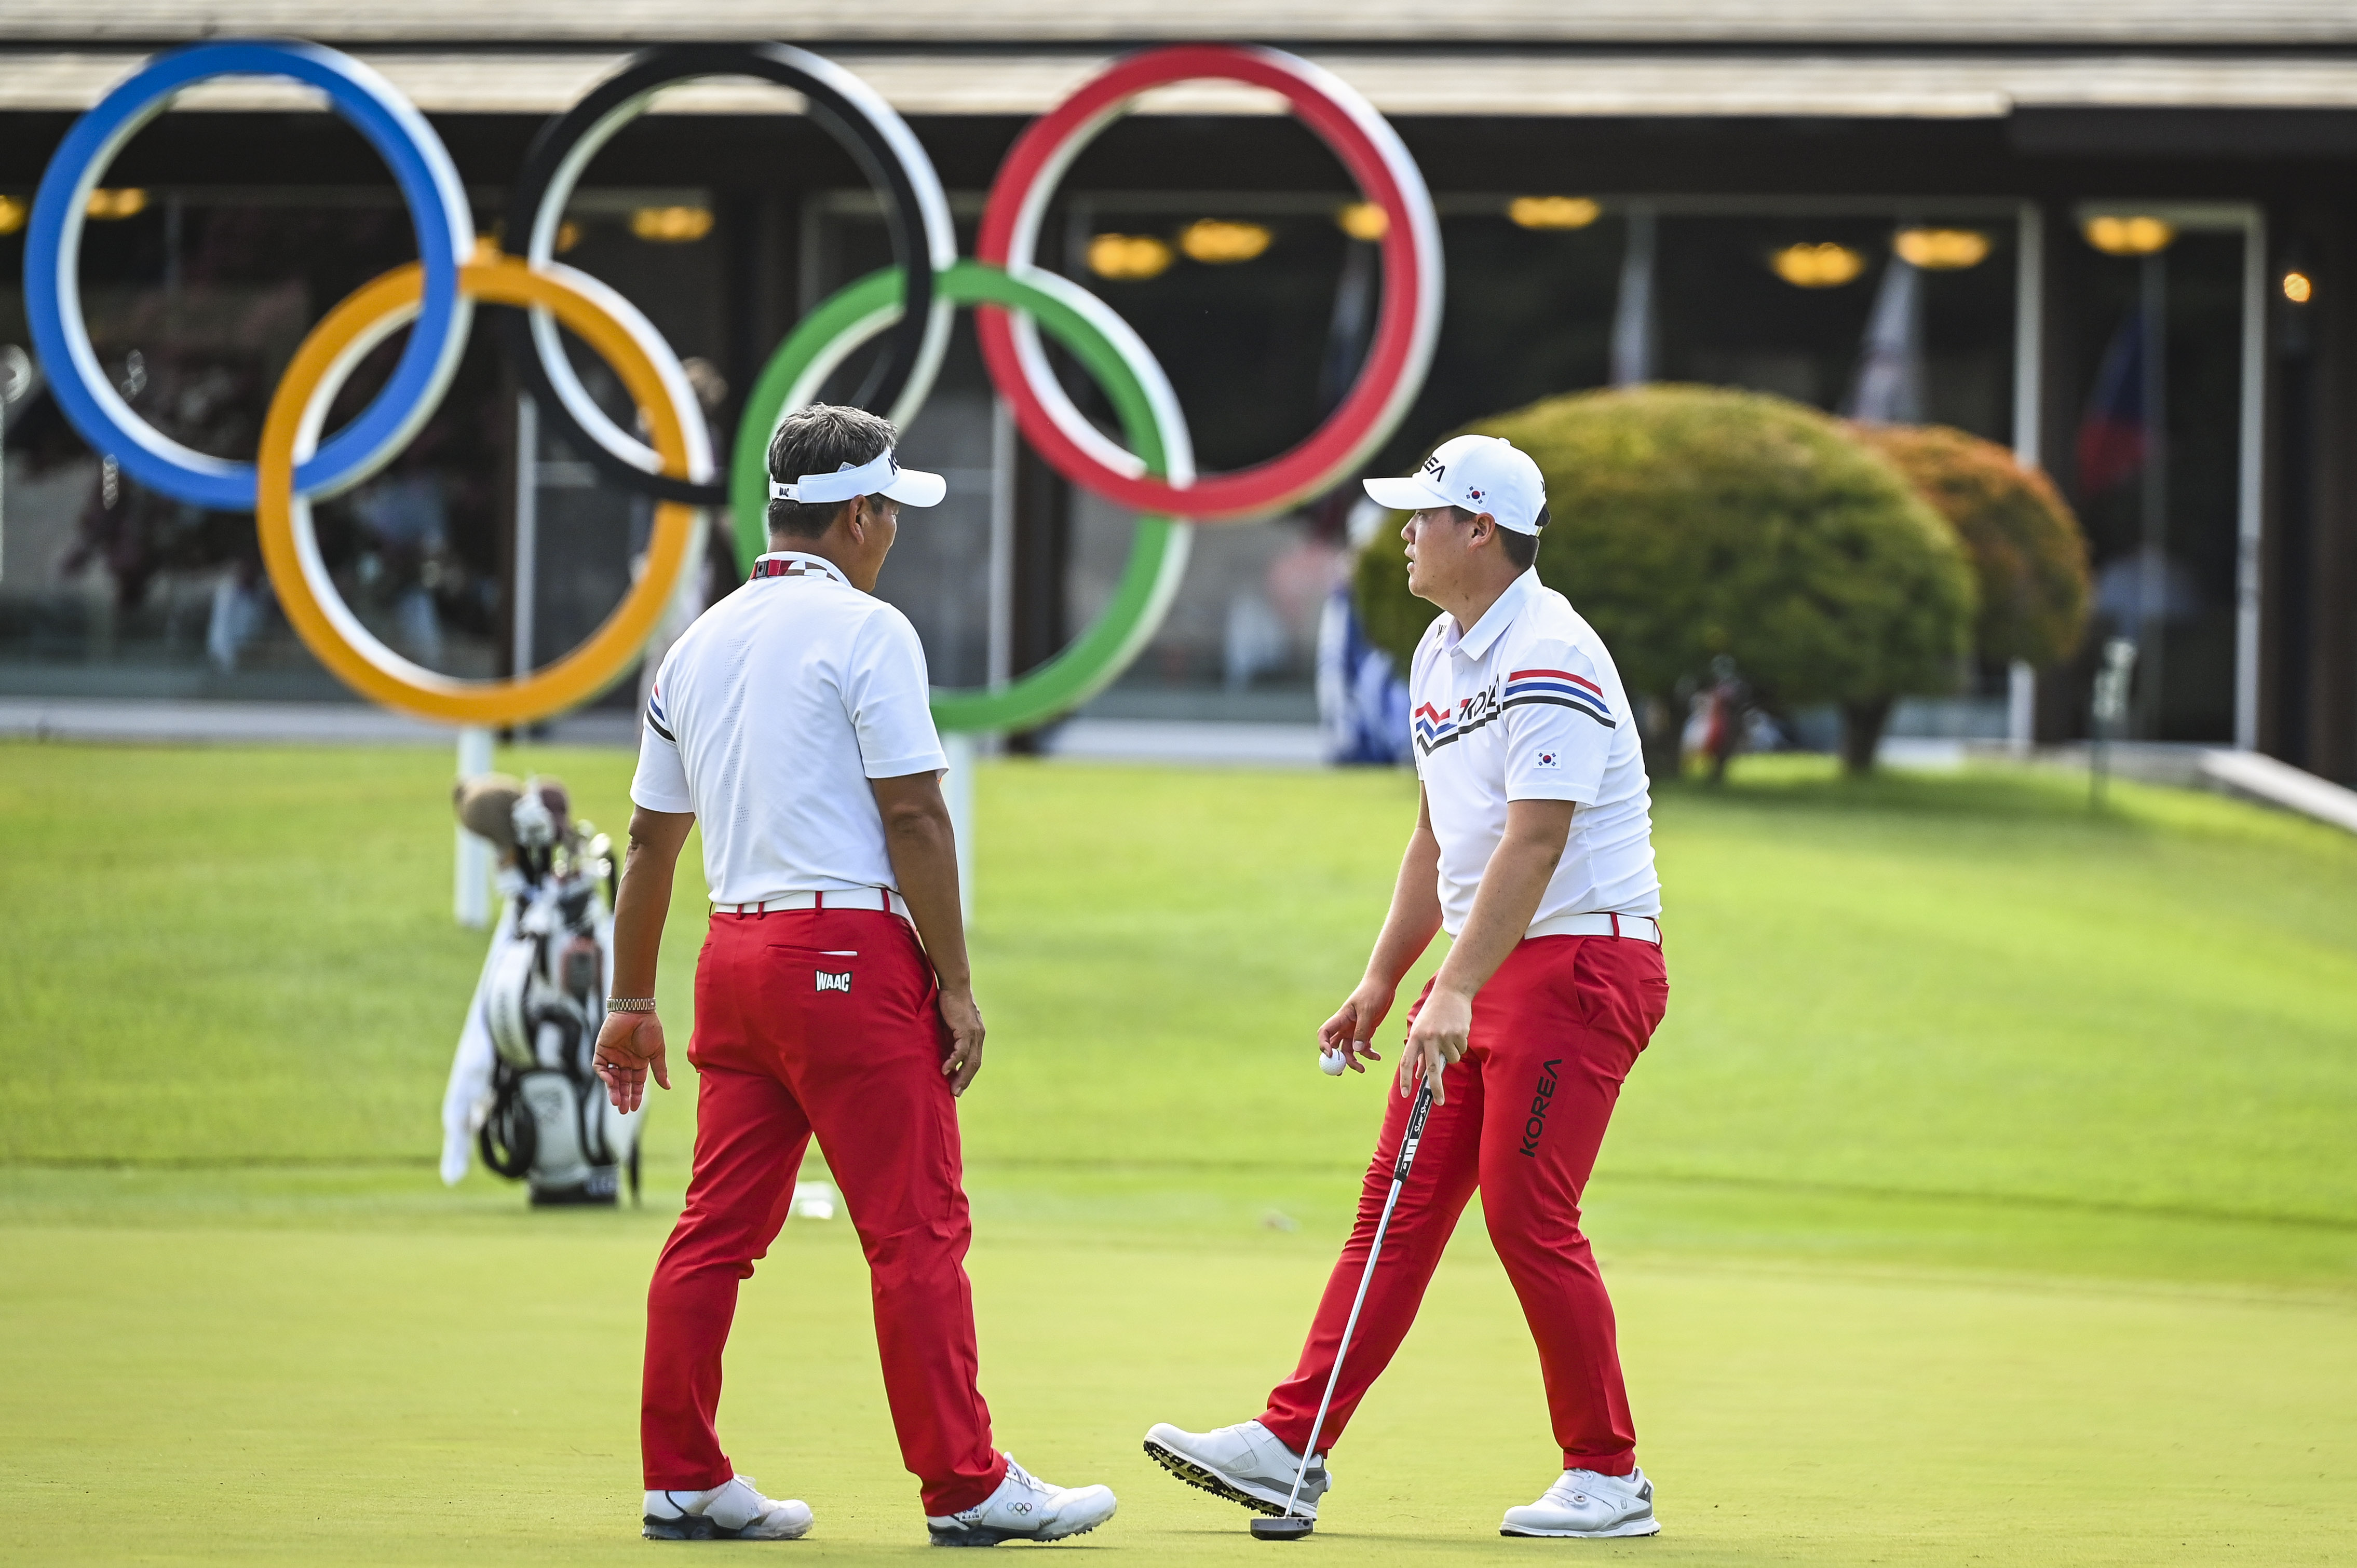 Sungjae Im and K.J. Choi of Team South Korea work on the putting green in front of the Olympic Rings during practice for the Mens Golf Competition of the Tokyo Olympic Games on the East Course at Kasumigaseki Country Club on July 27, 2021 in Kawagoe, Saitama, Japan.